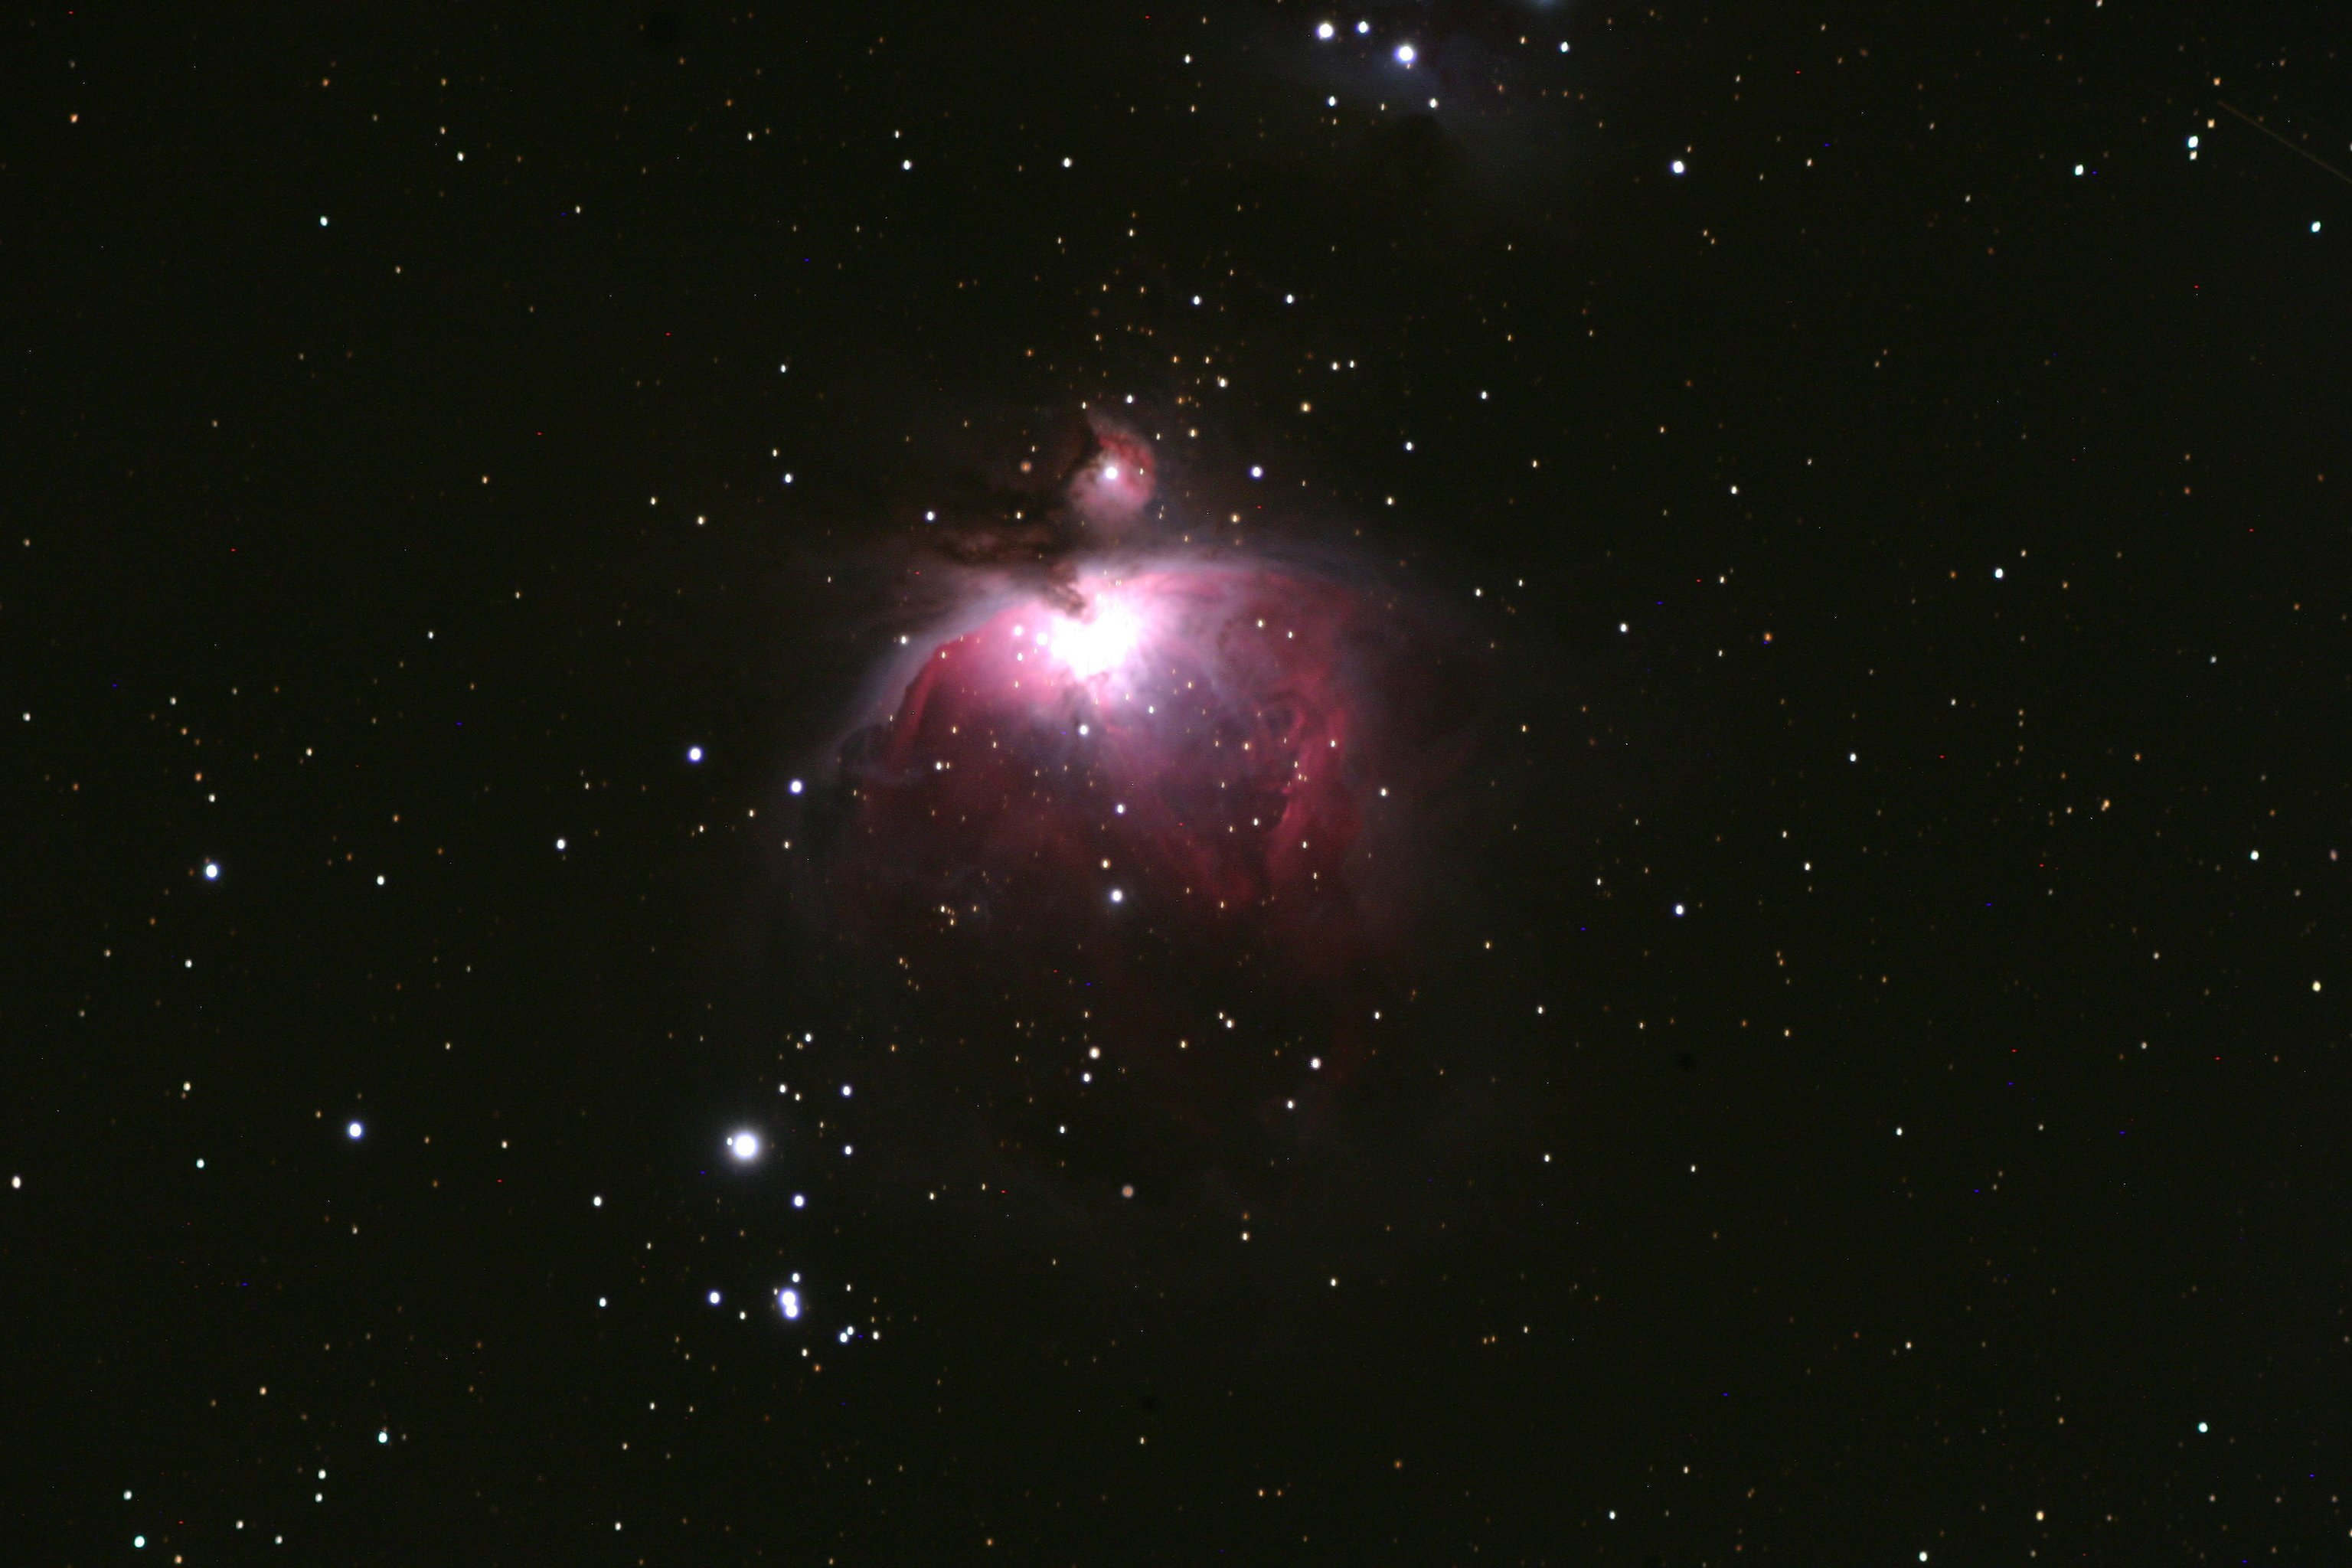 eskimo nebula location orion - photo #36